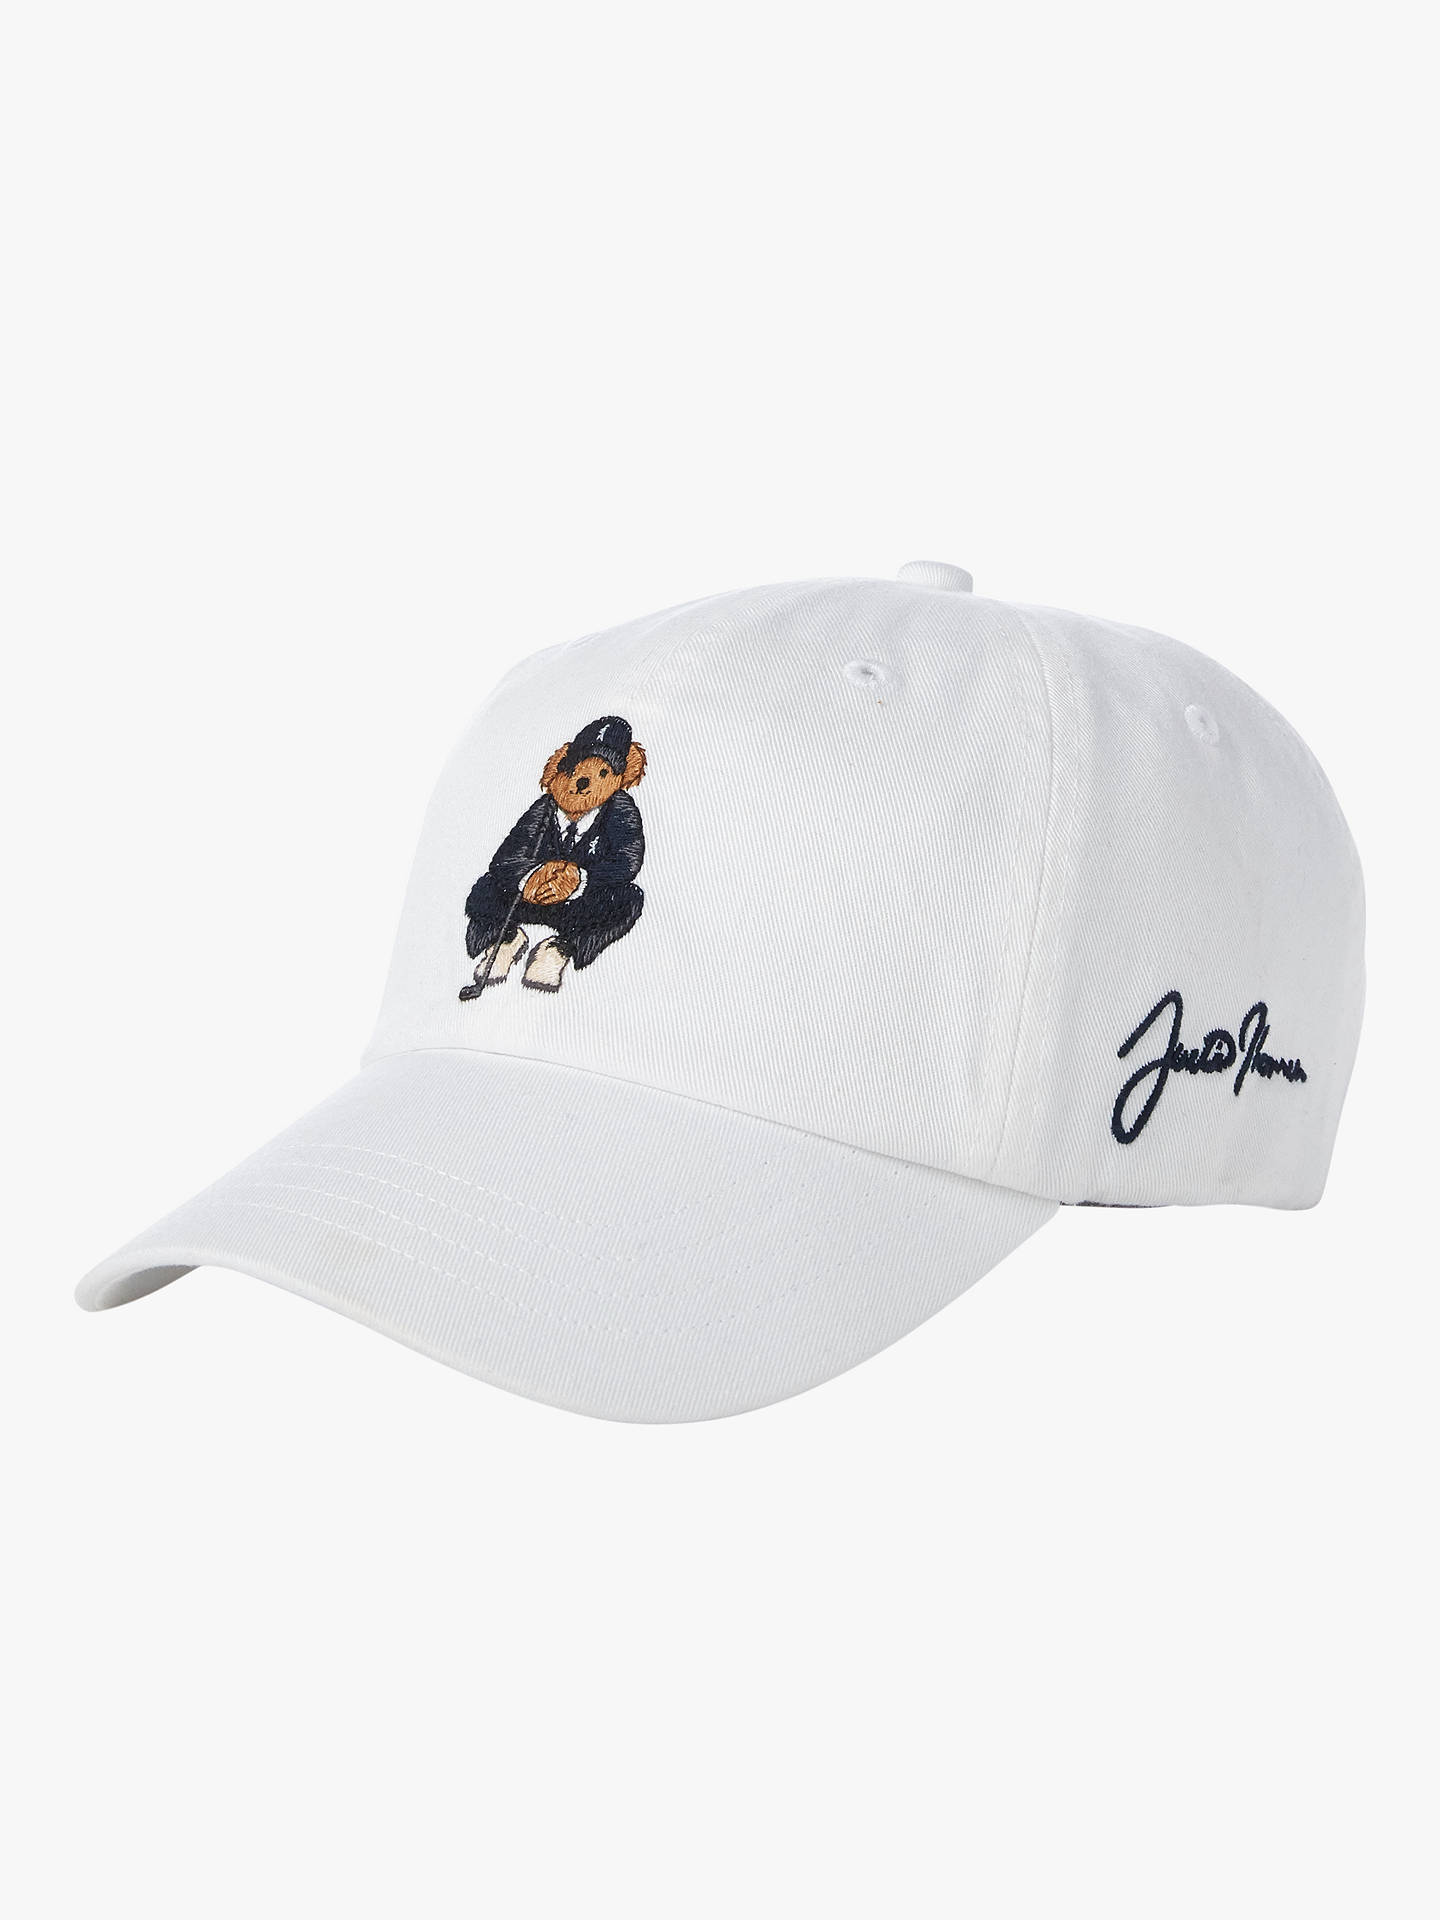 6c2553900bee7 Buy Polo Golf by Ralph Lauren Justin Thomas Bear Cap